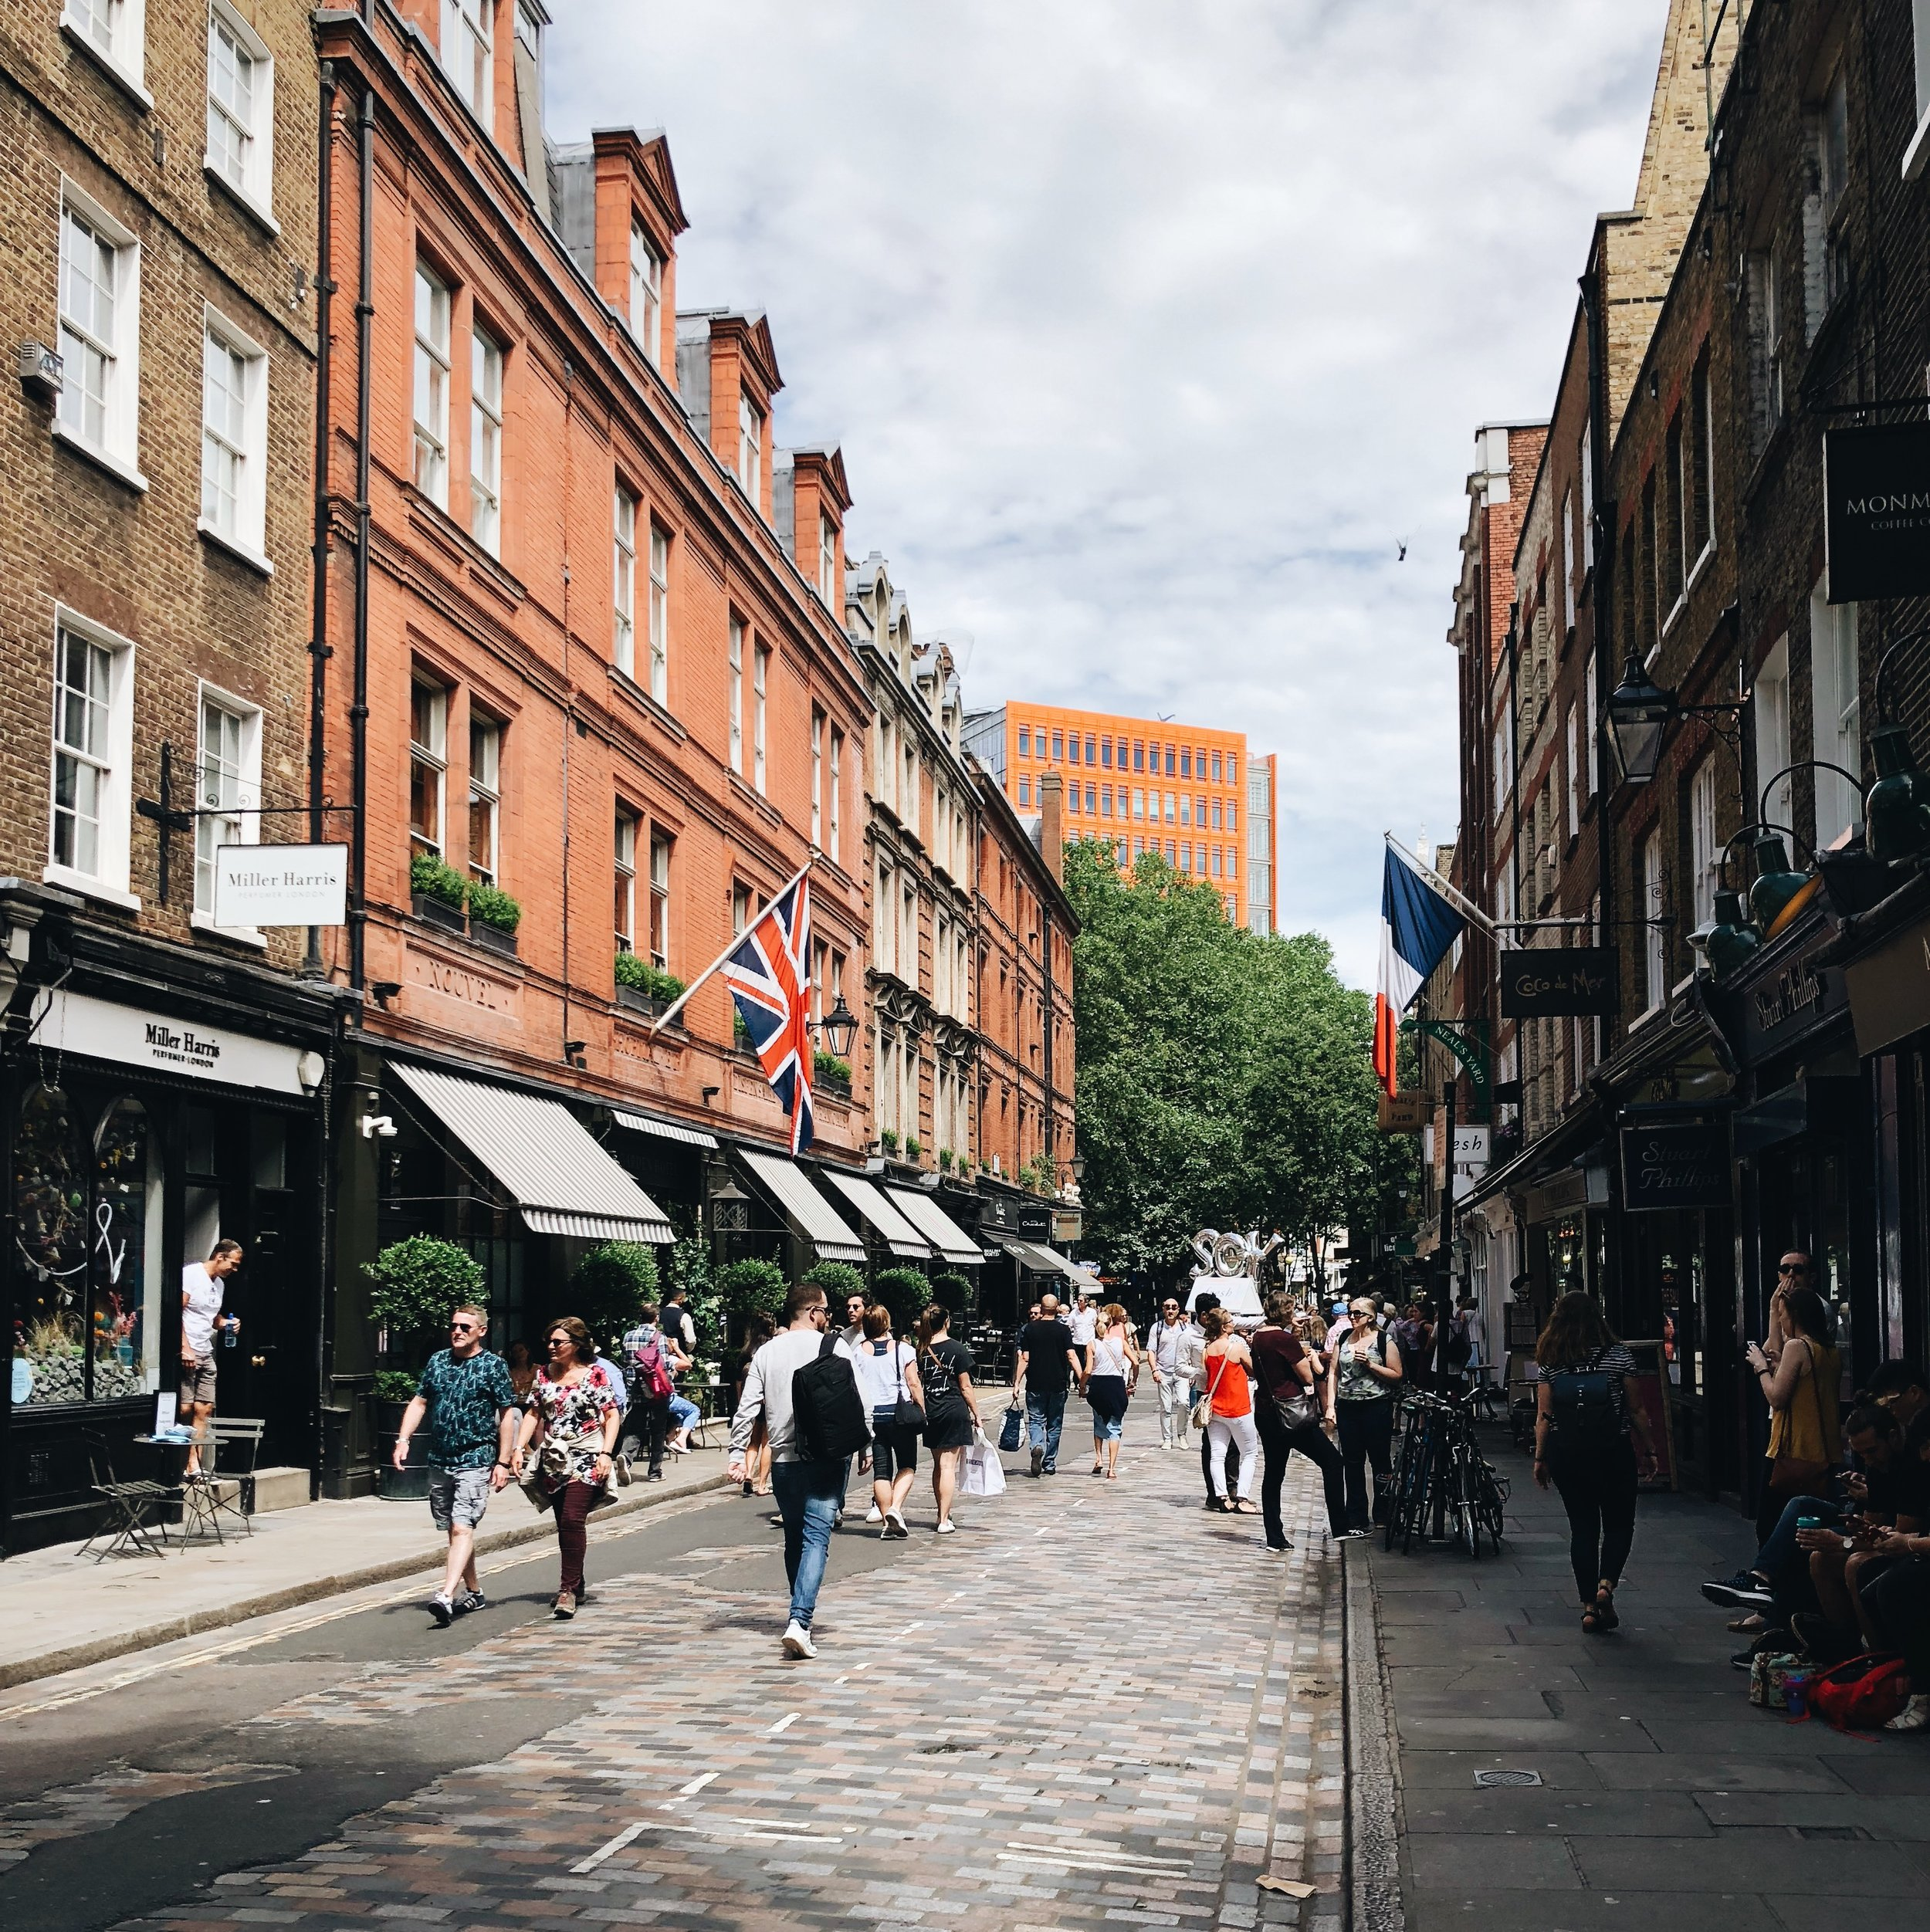 Beautiful Monmouth Street in the Seven Dials in central London.